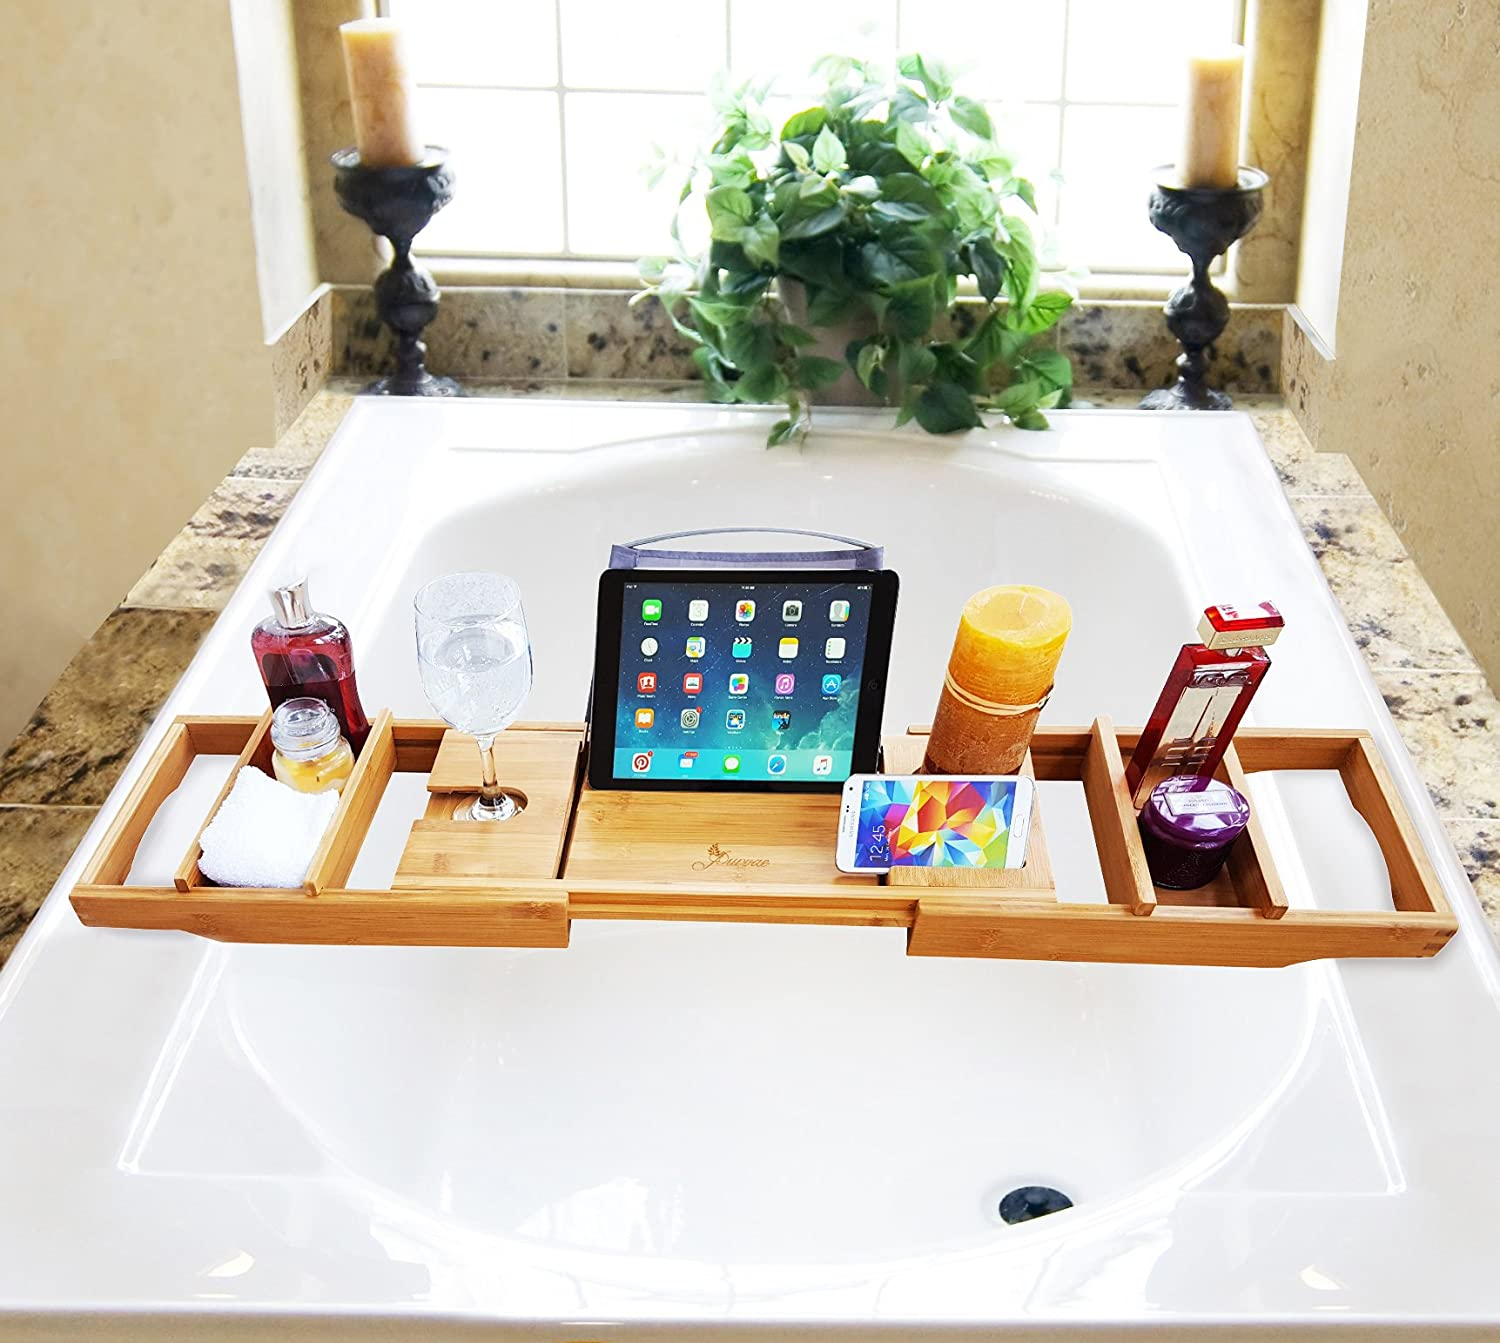 Purvae Luxury Bathtub Caddy With Candle & Book Holder - Natural ...